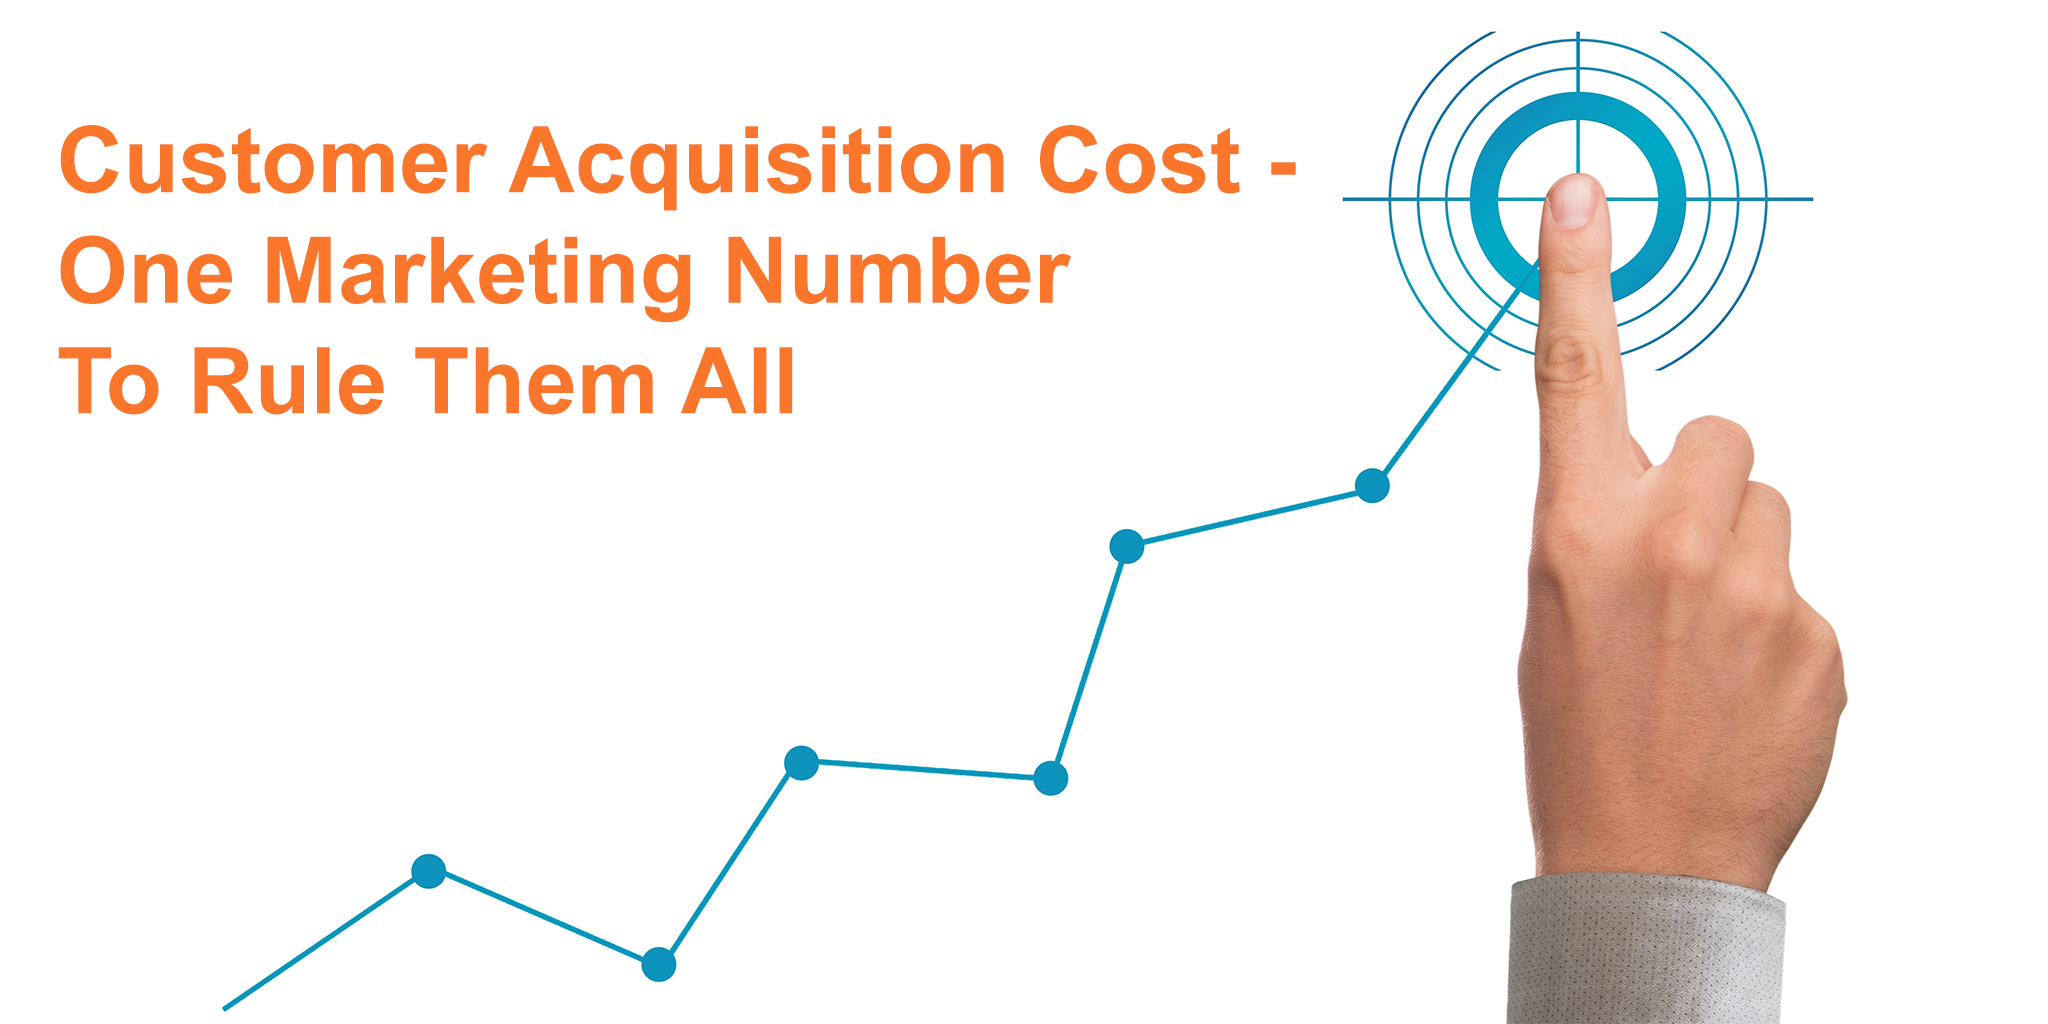 Graph moving up and to the right culminating in a target point with a finger pointing at the target customer acquisition cost (CAC).